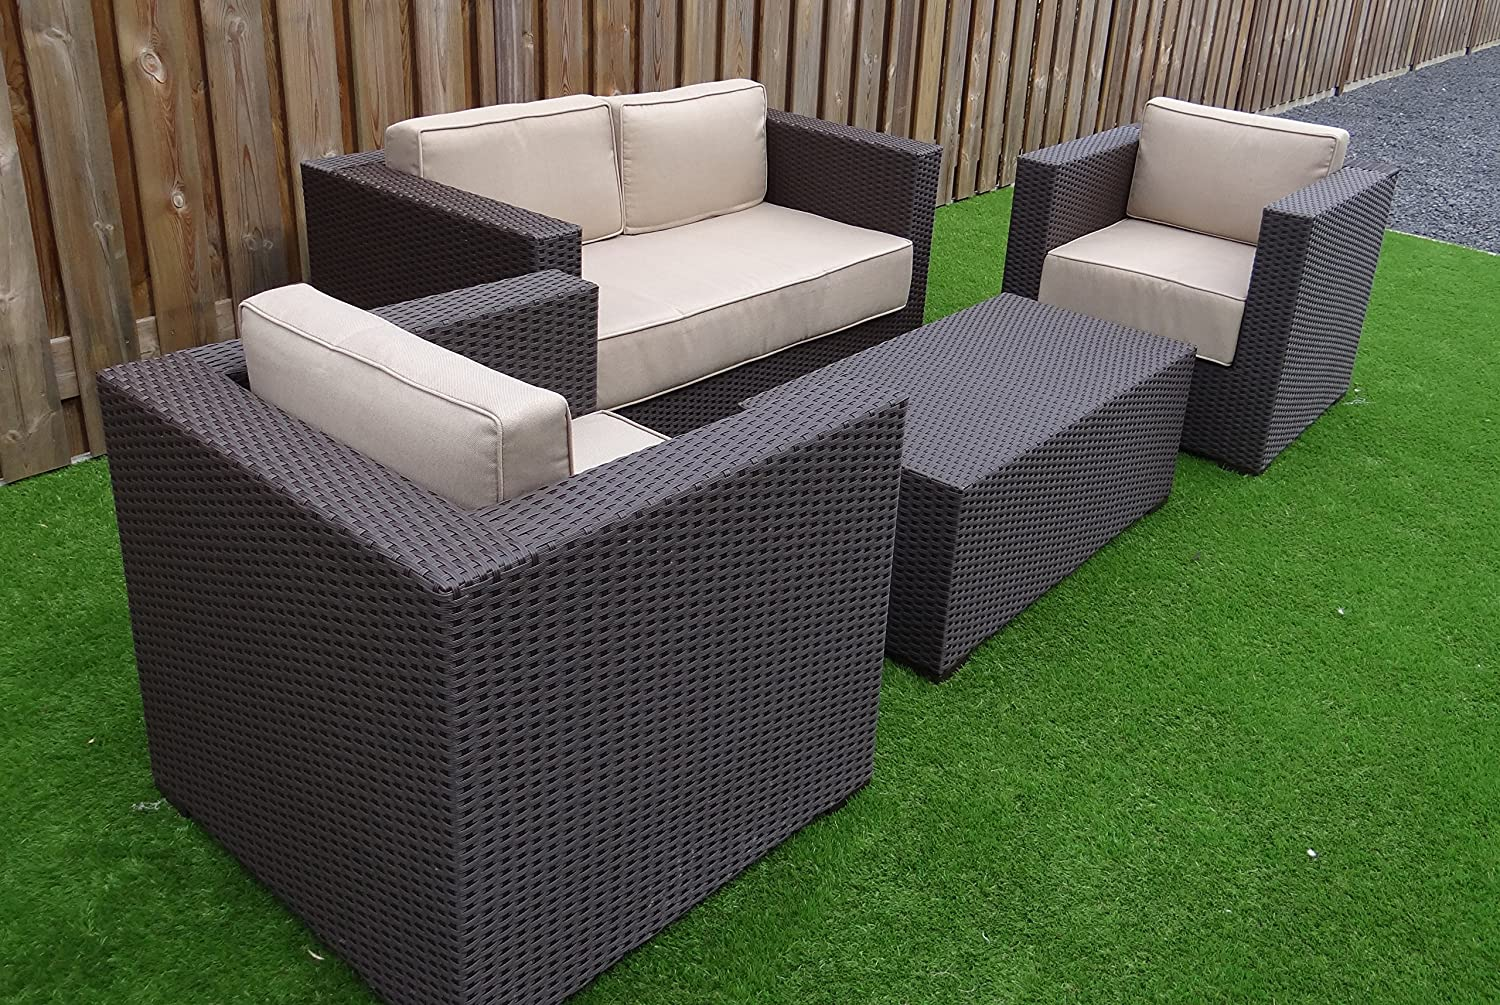 rattan sofa garten gnstig kaufen affordable sofaset poly rattan braun with rattan sofa garten. Black Bedroom Furniture Sets. Home Design Ideas